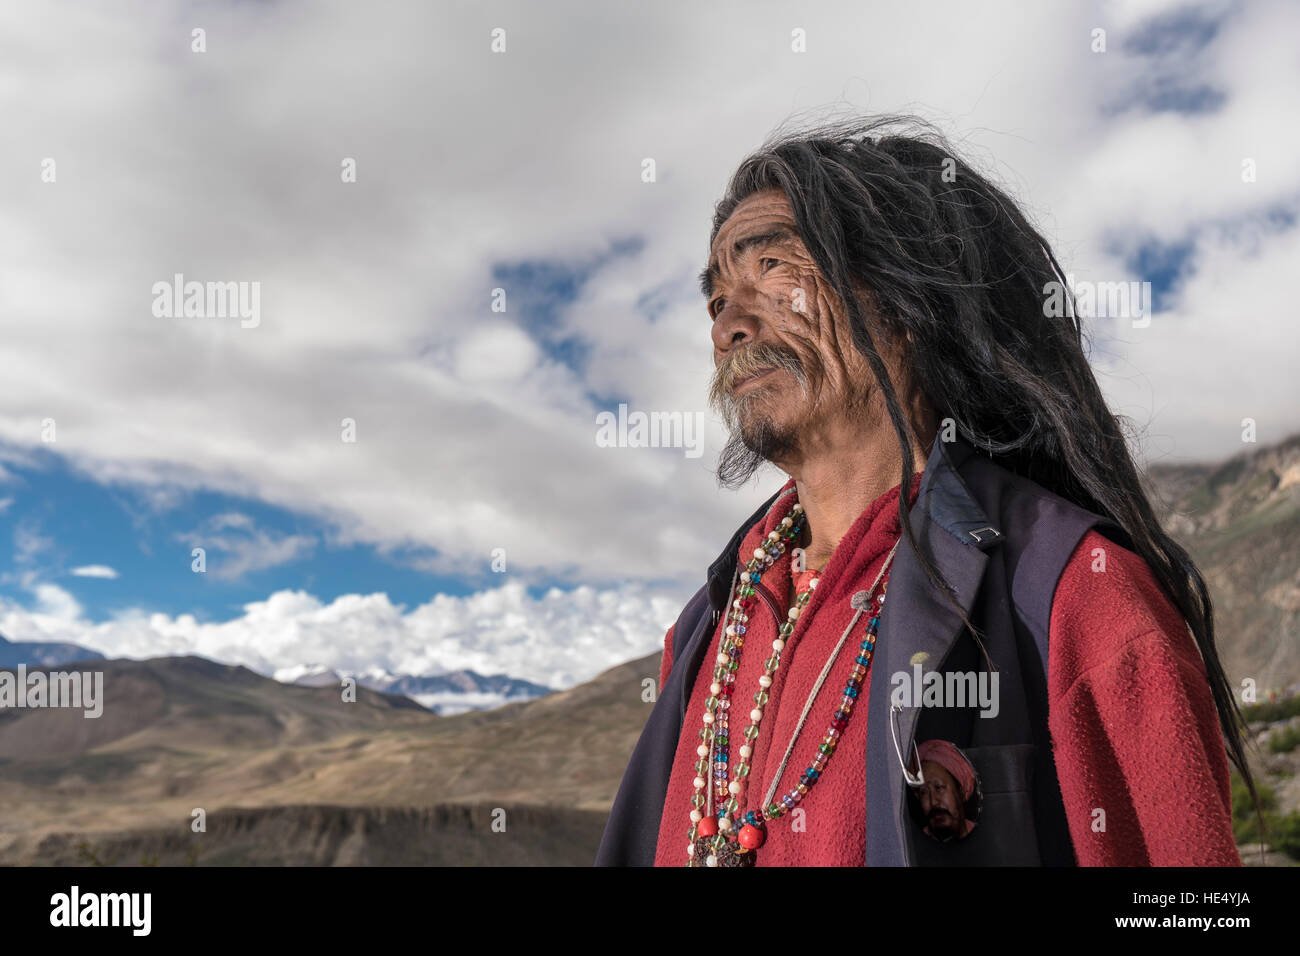 A portrait of a Sadhu, holy man, looking into the himalayan mountains Stock Photo